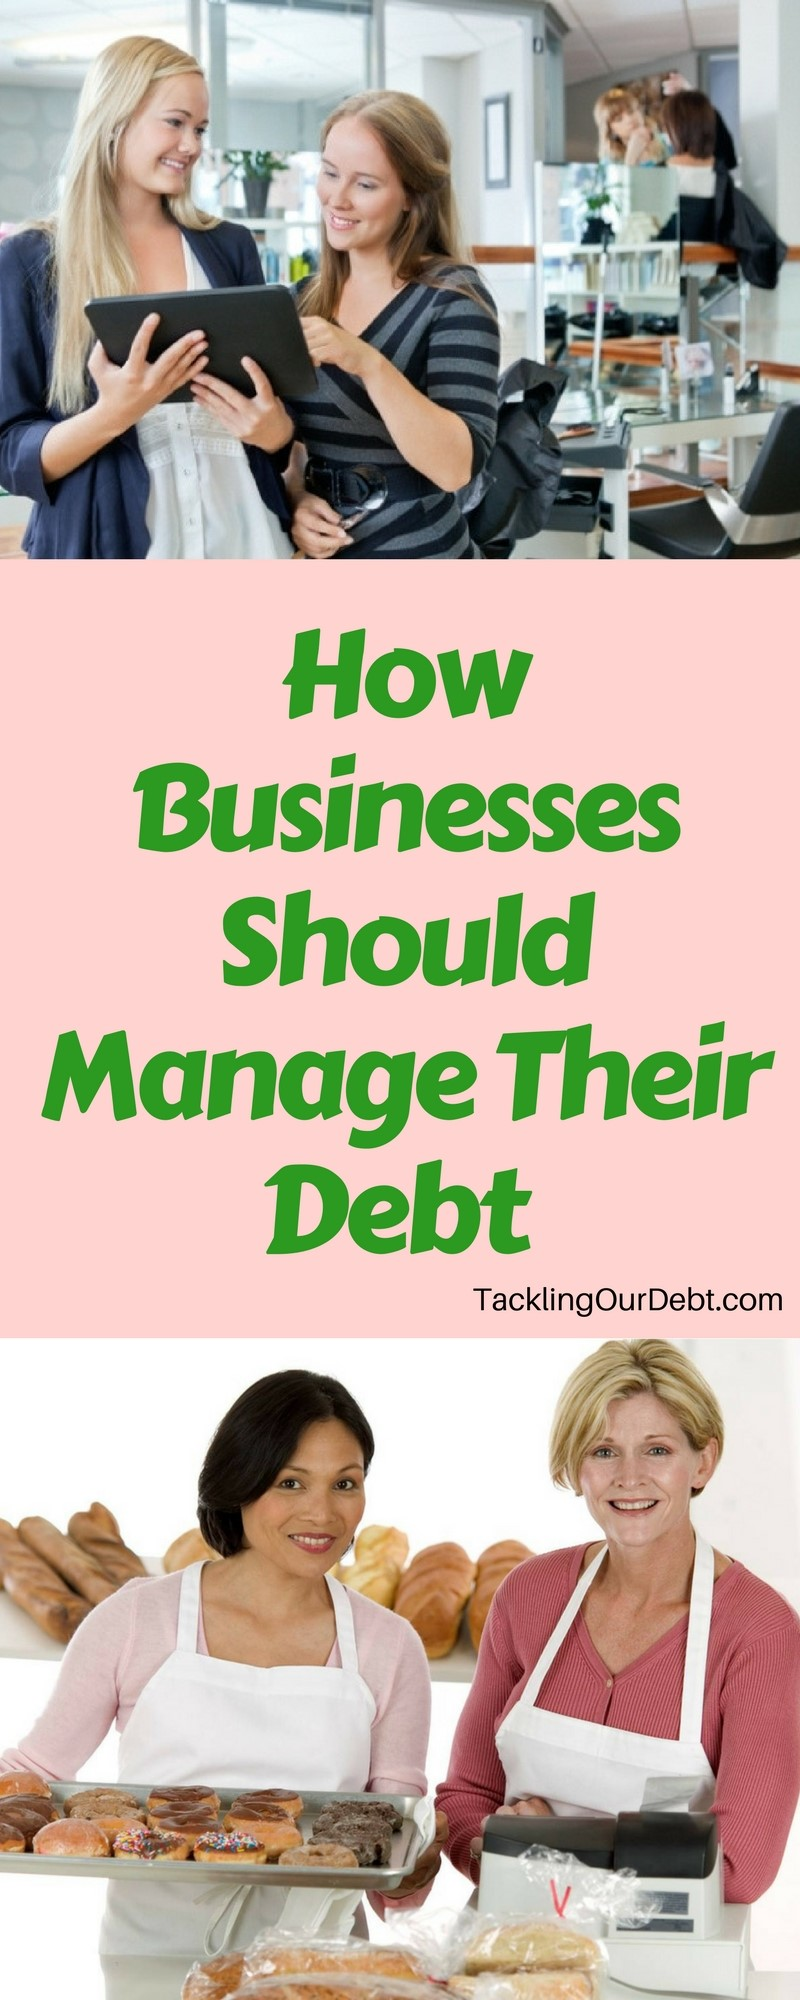 Businesses need to know how to manage their debt if they are going to be successful.